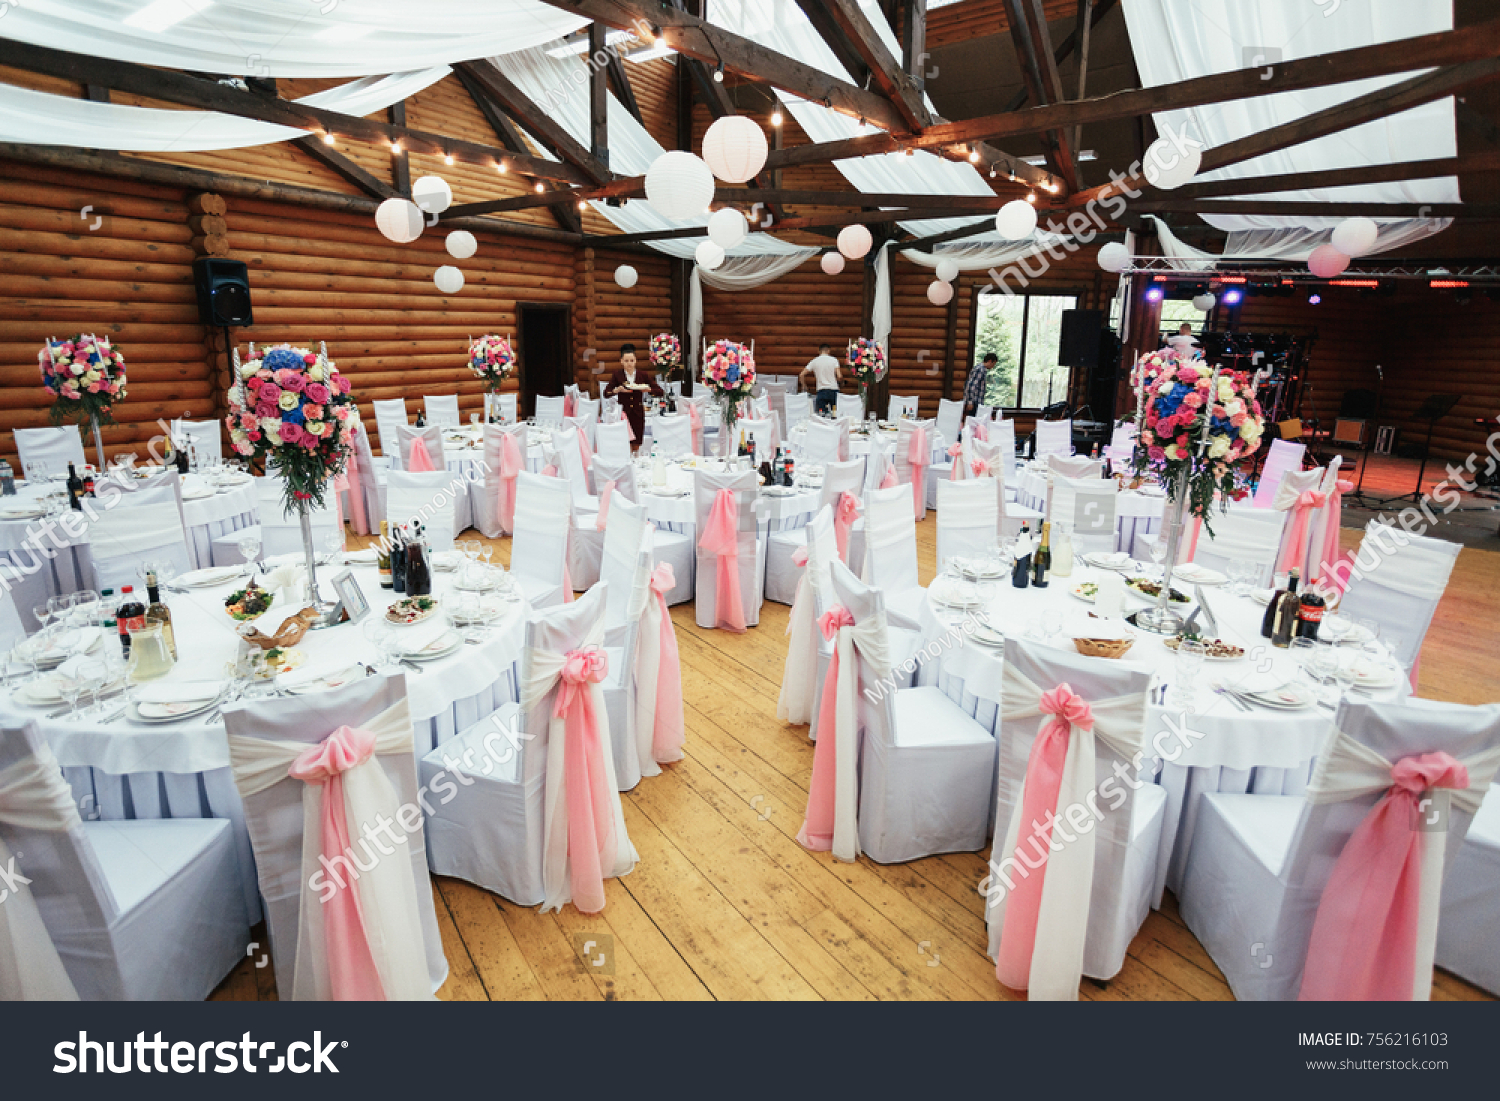 White Chairs Decorated With Pink Bows Stand At Round Tables In Wooden  Restaurant Hall